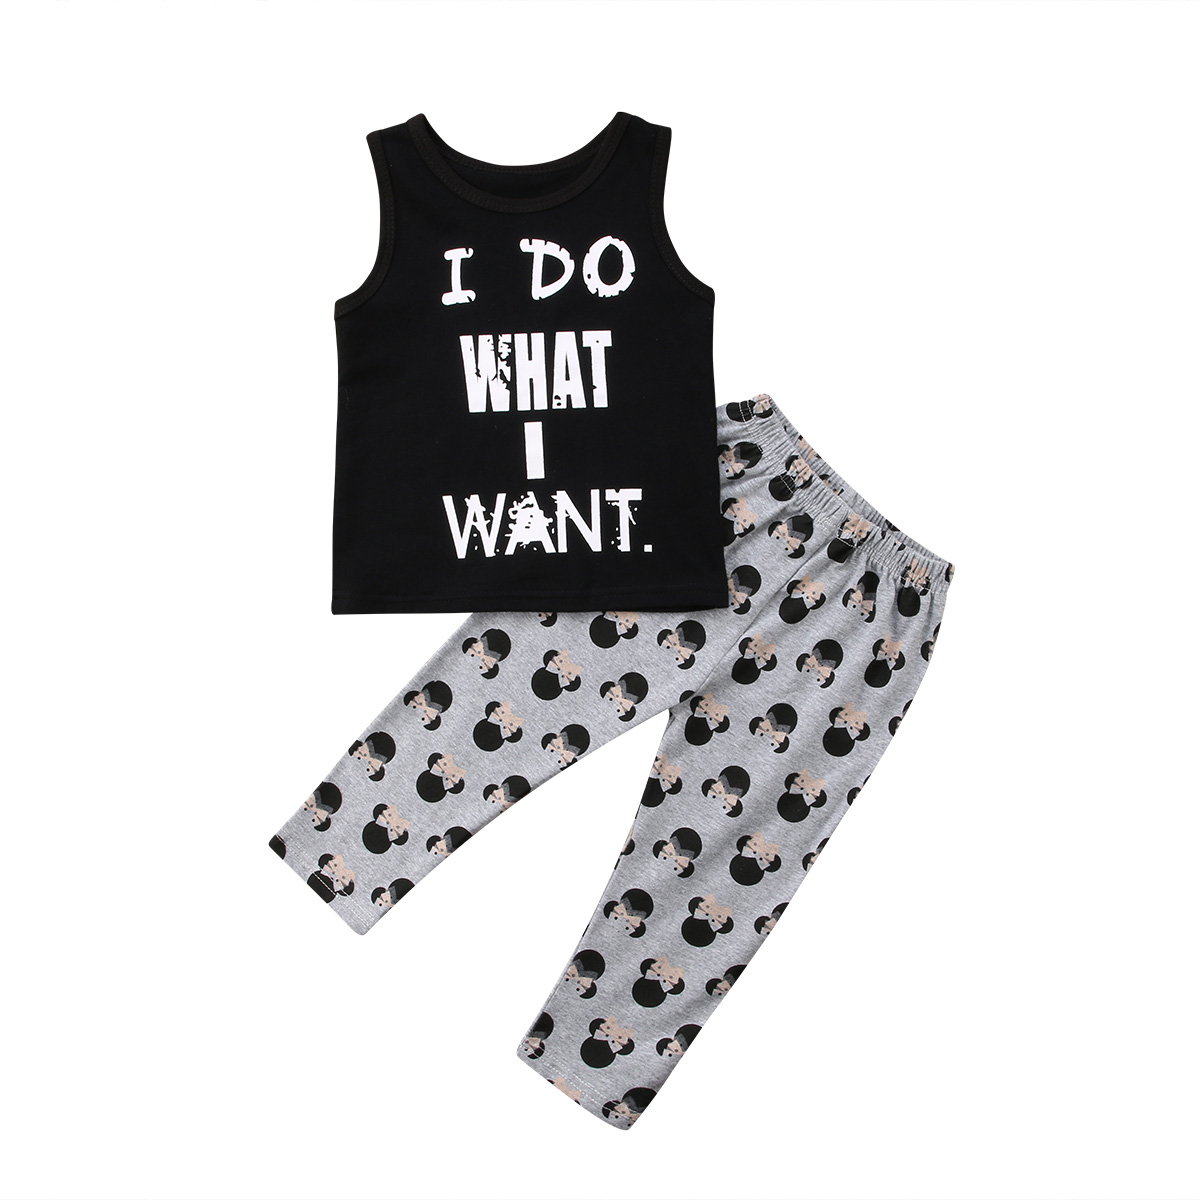 2PCS Toddler Baby Girl Boys Outfits Letter Sleeveless Black T-Shirt Tops+ Gray Shorts Pants Black Clothes Set 0-24M